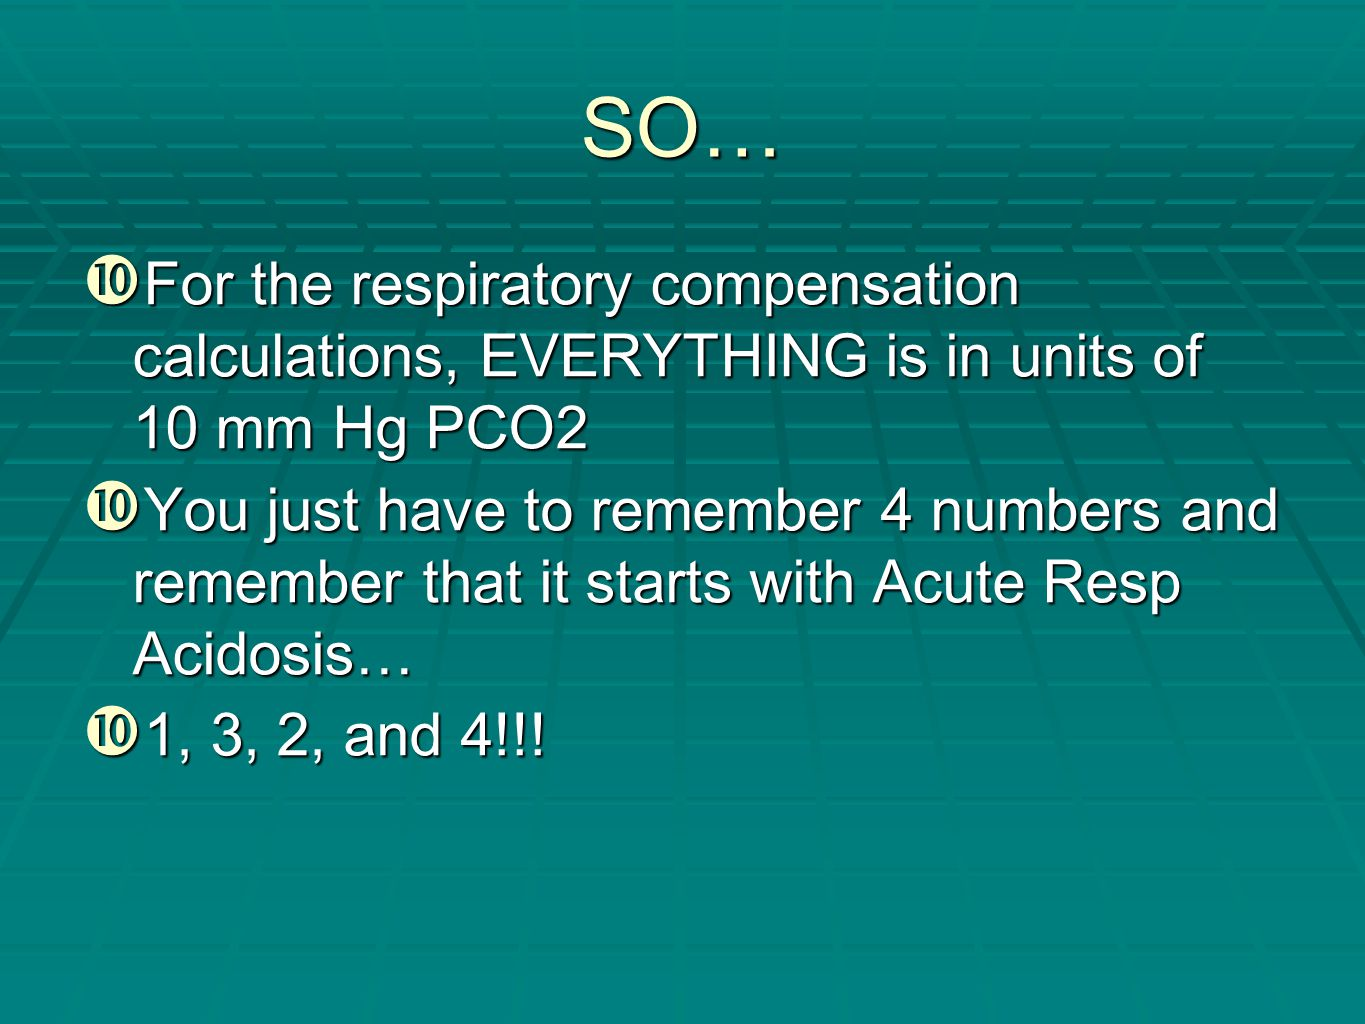 SO… For the respiratory compensation calculations, EVERYTHING is in units of 10 mm Hg PCO2.